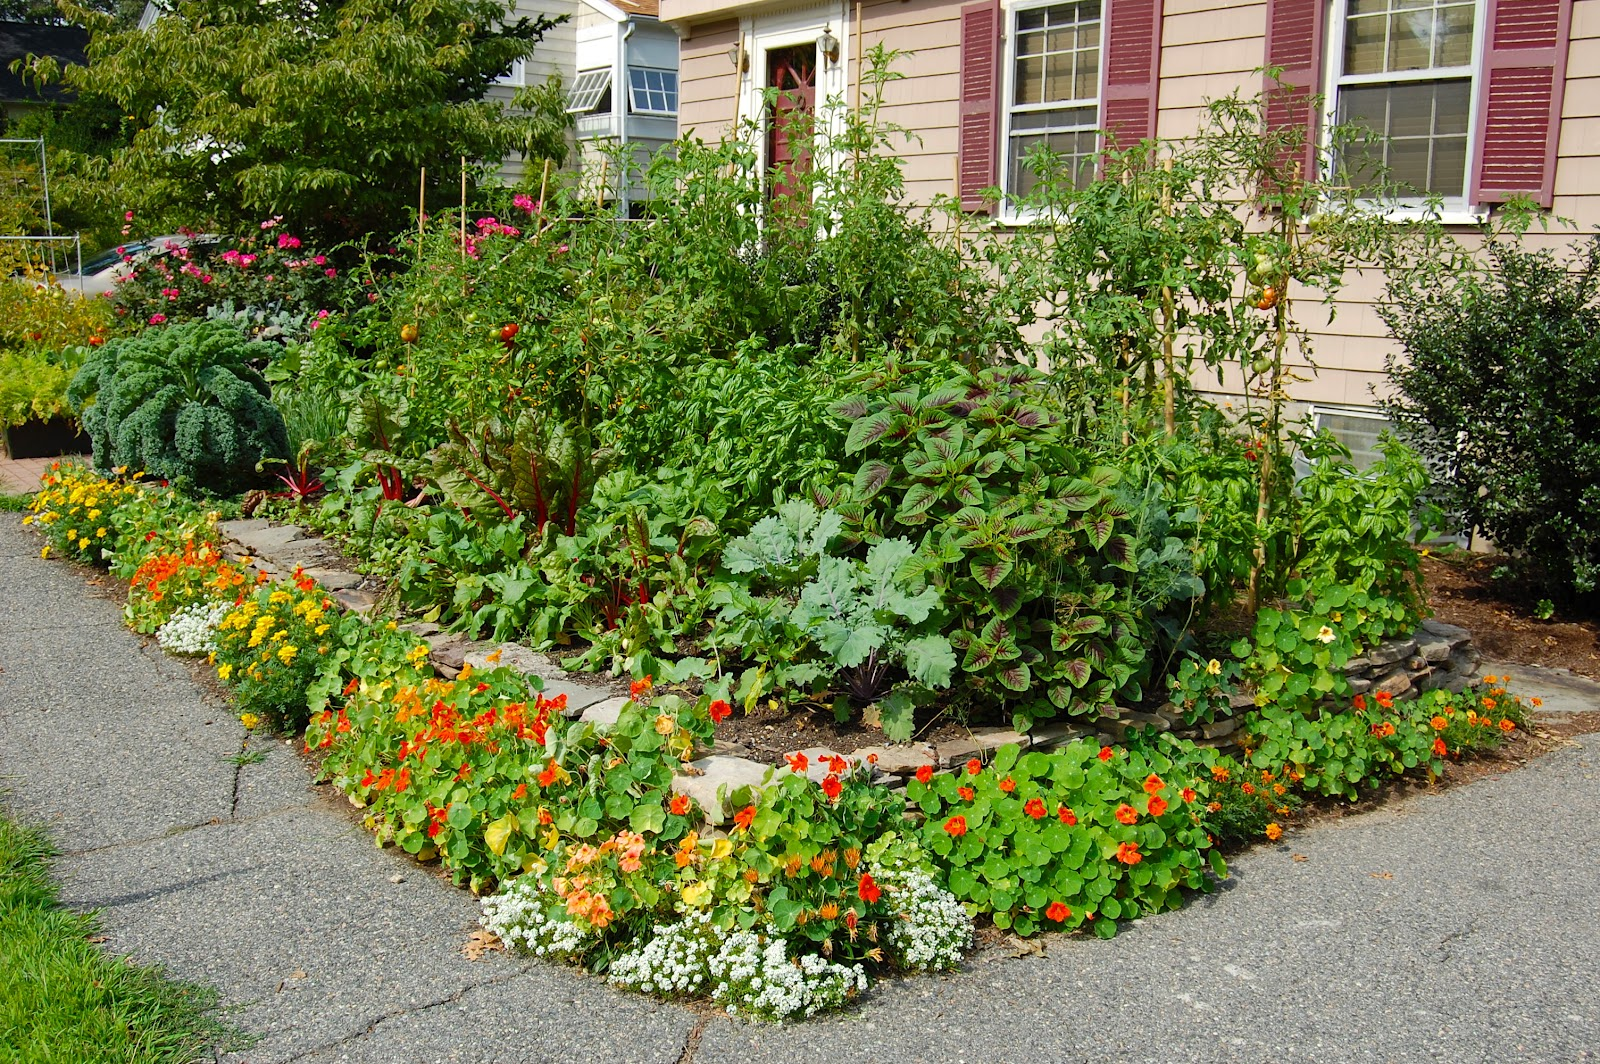 Landscaping landscaping ideas for front yard edible gardens for Front yard garden design